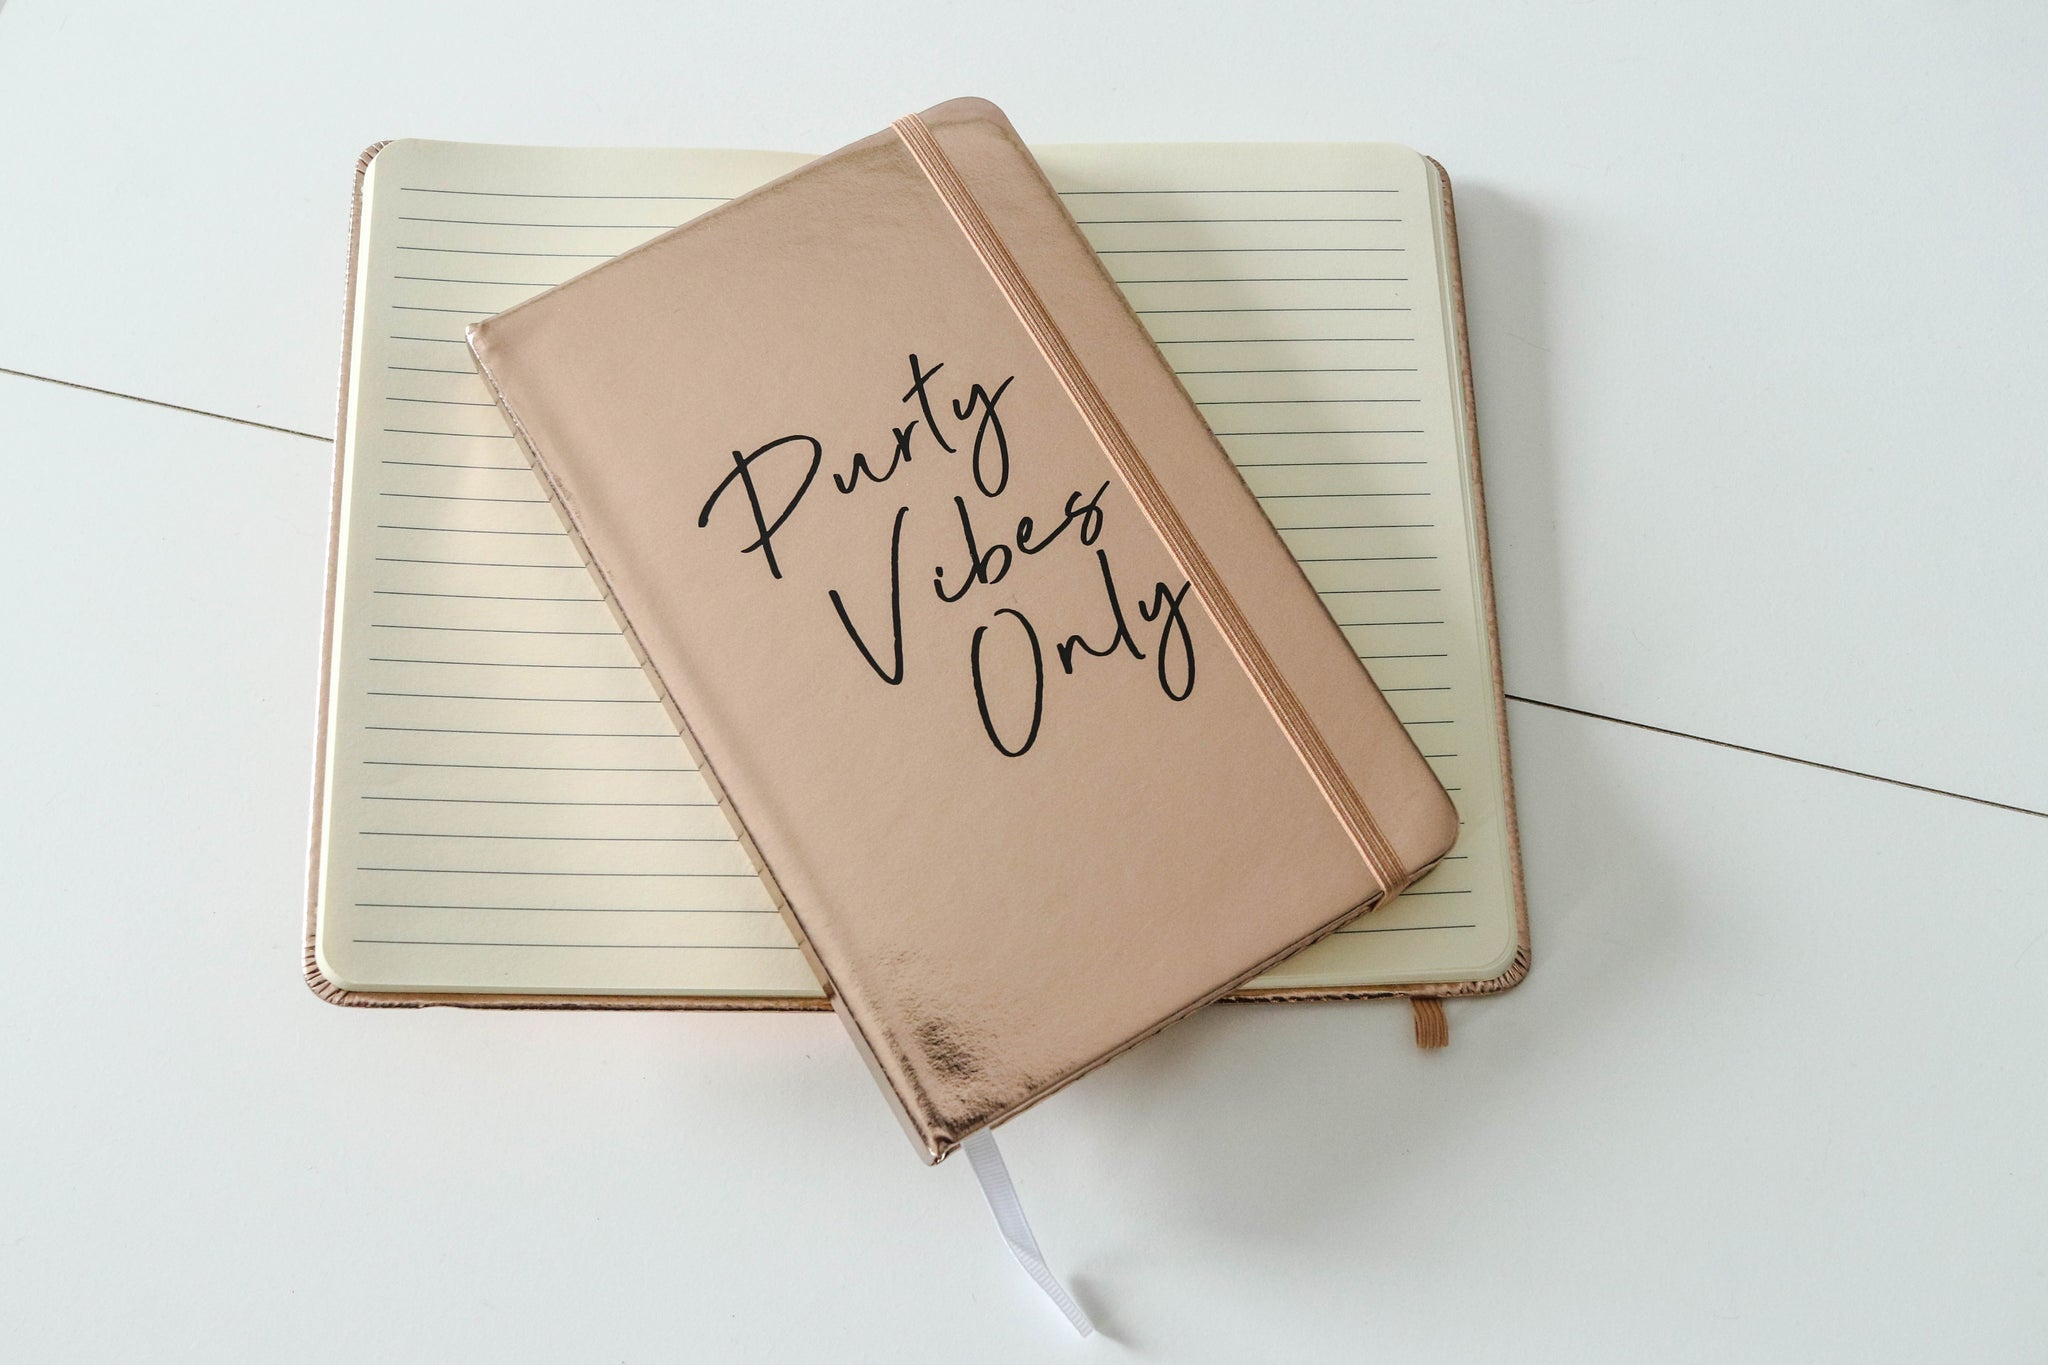 Purty Vibes Only Metallic Journal